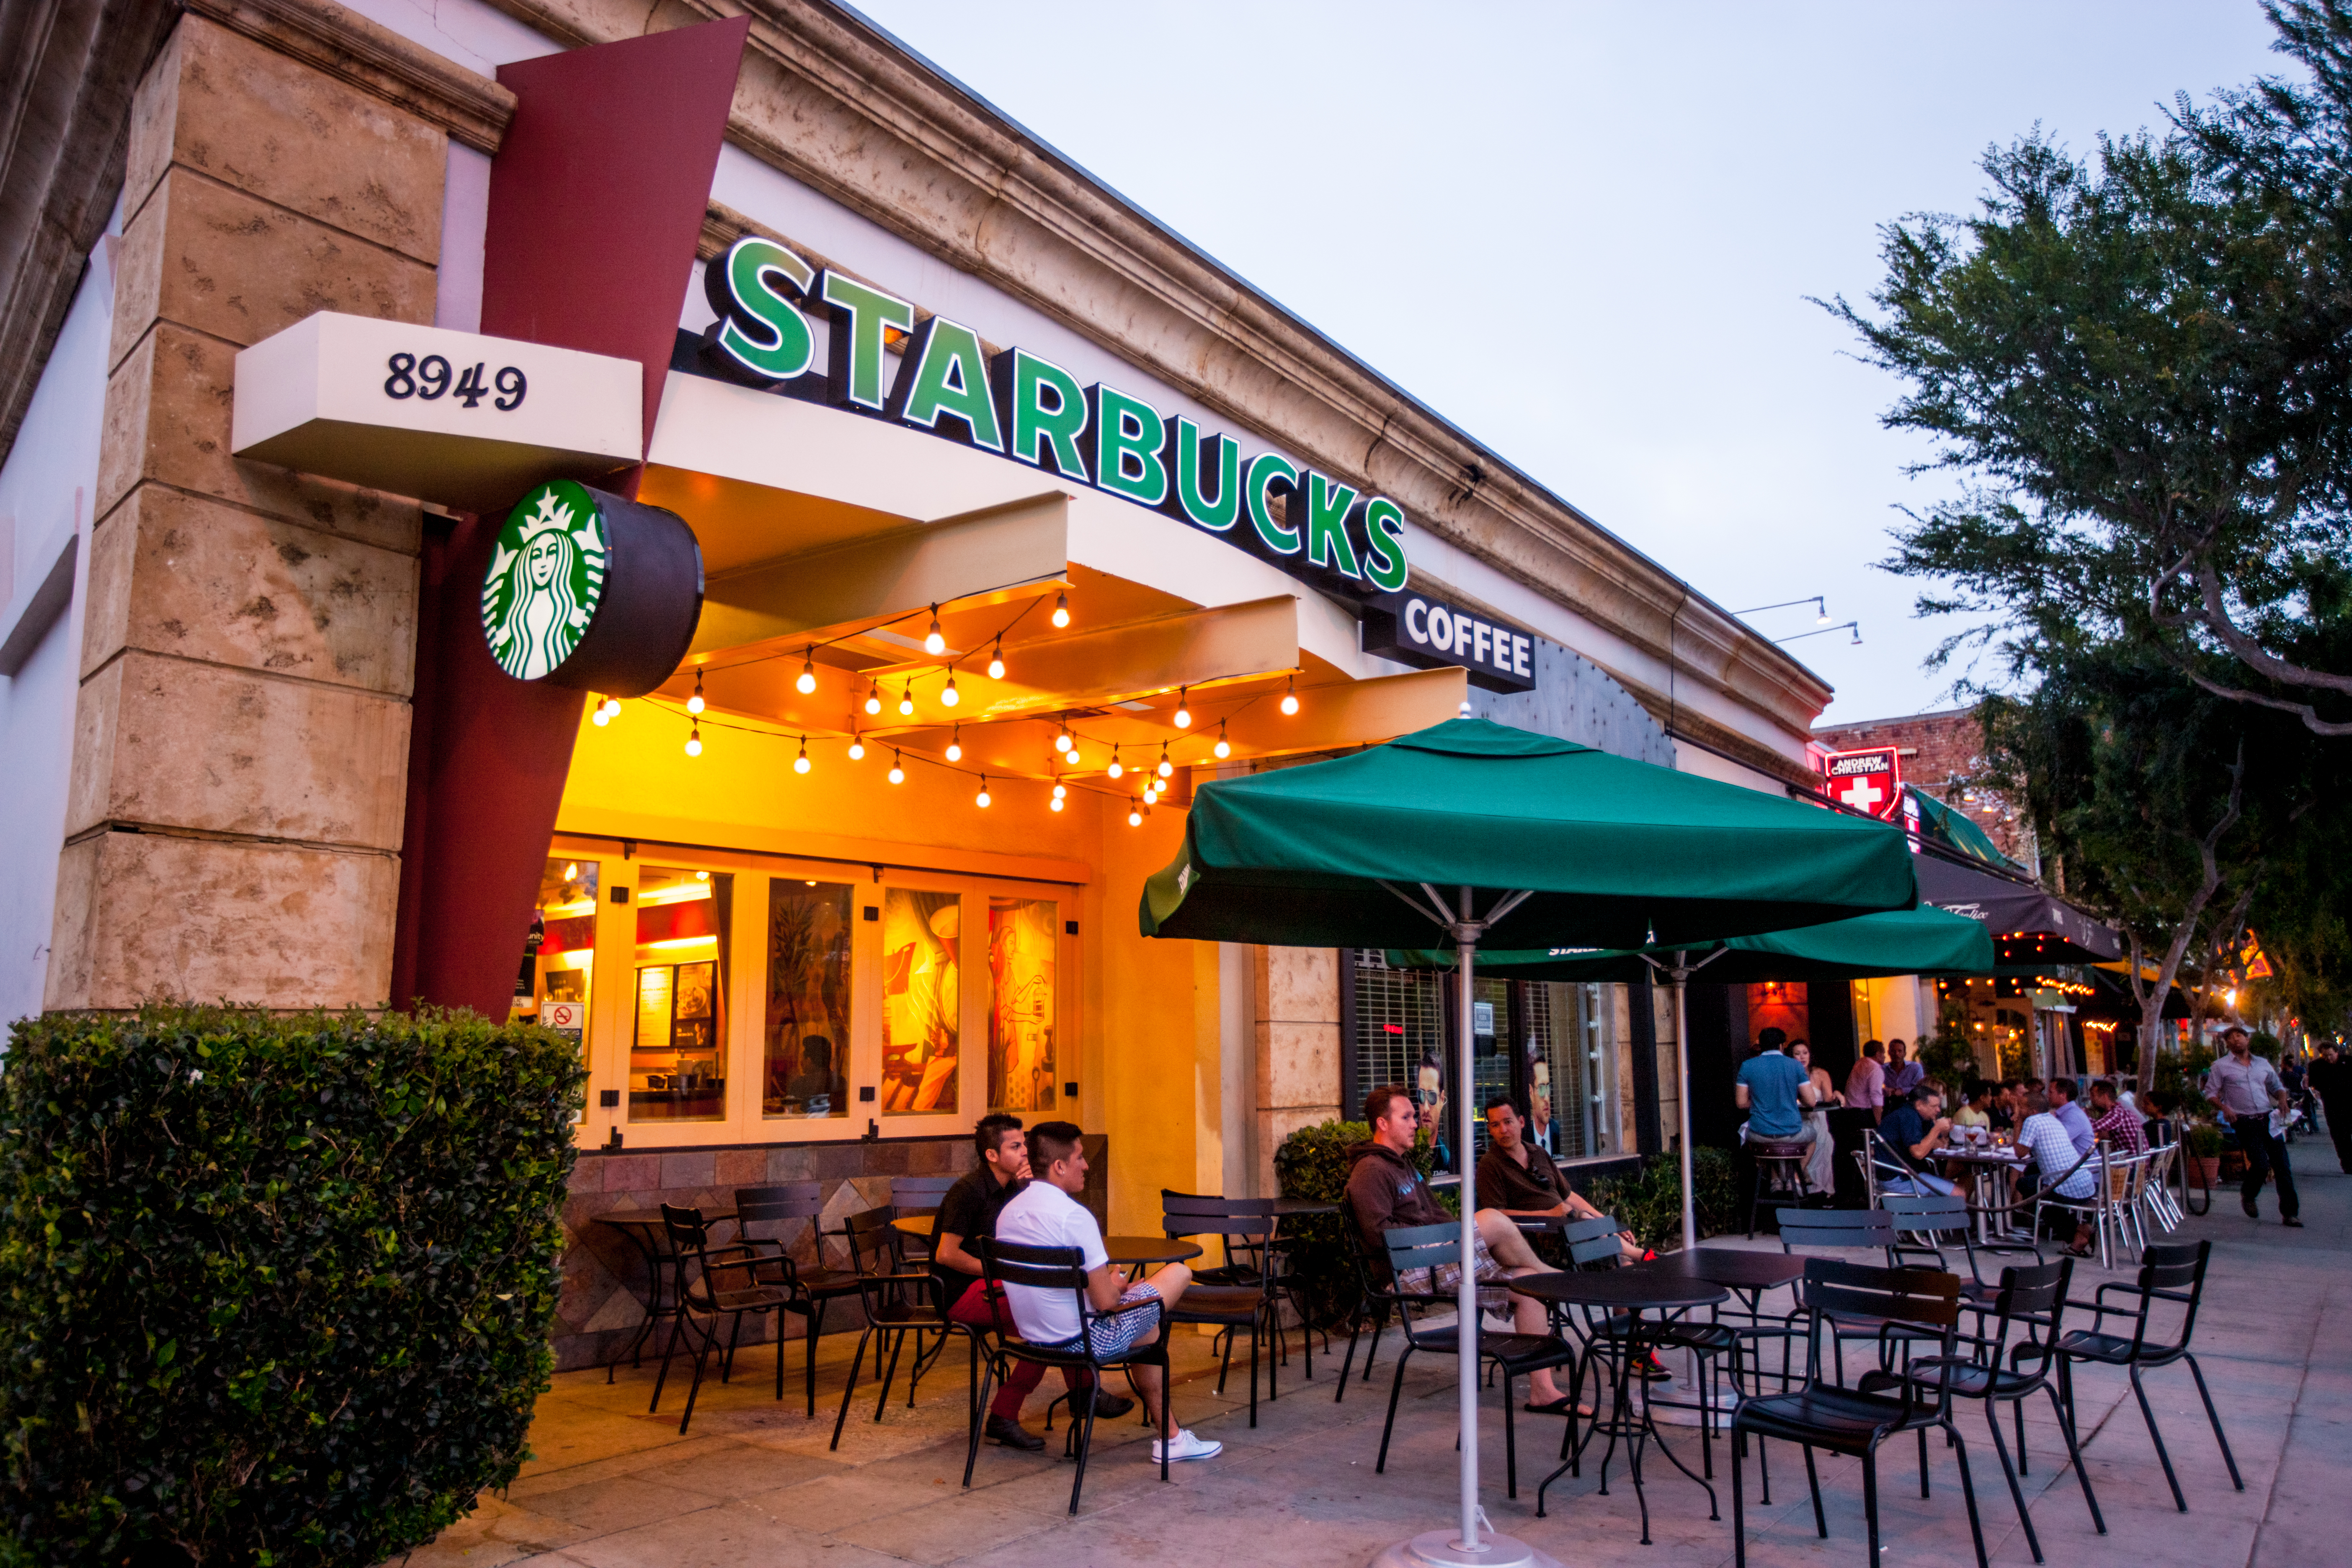 Starbucks Coffee in West Hollywood, California.